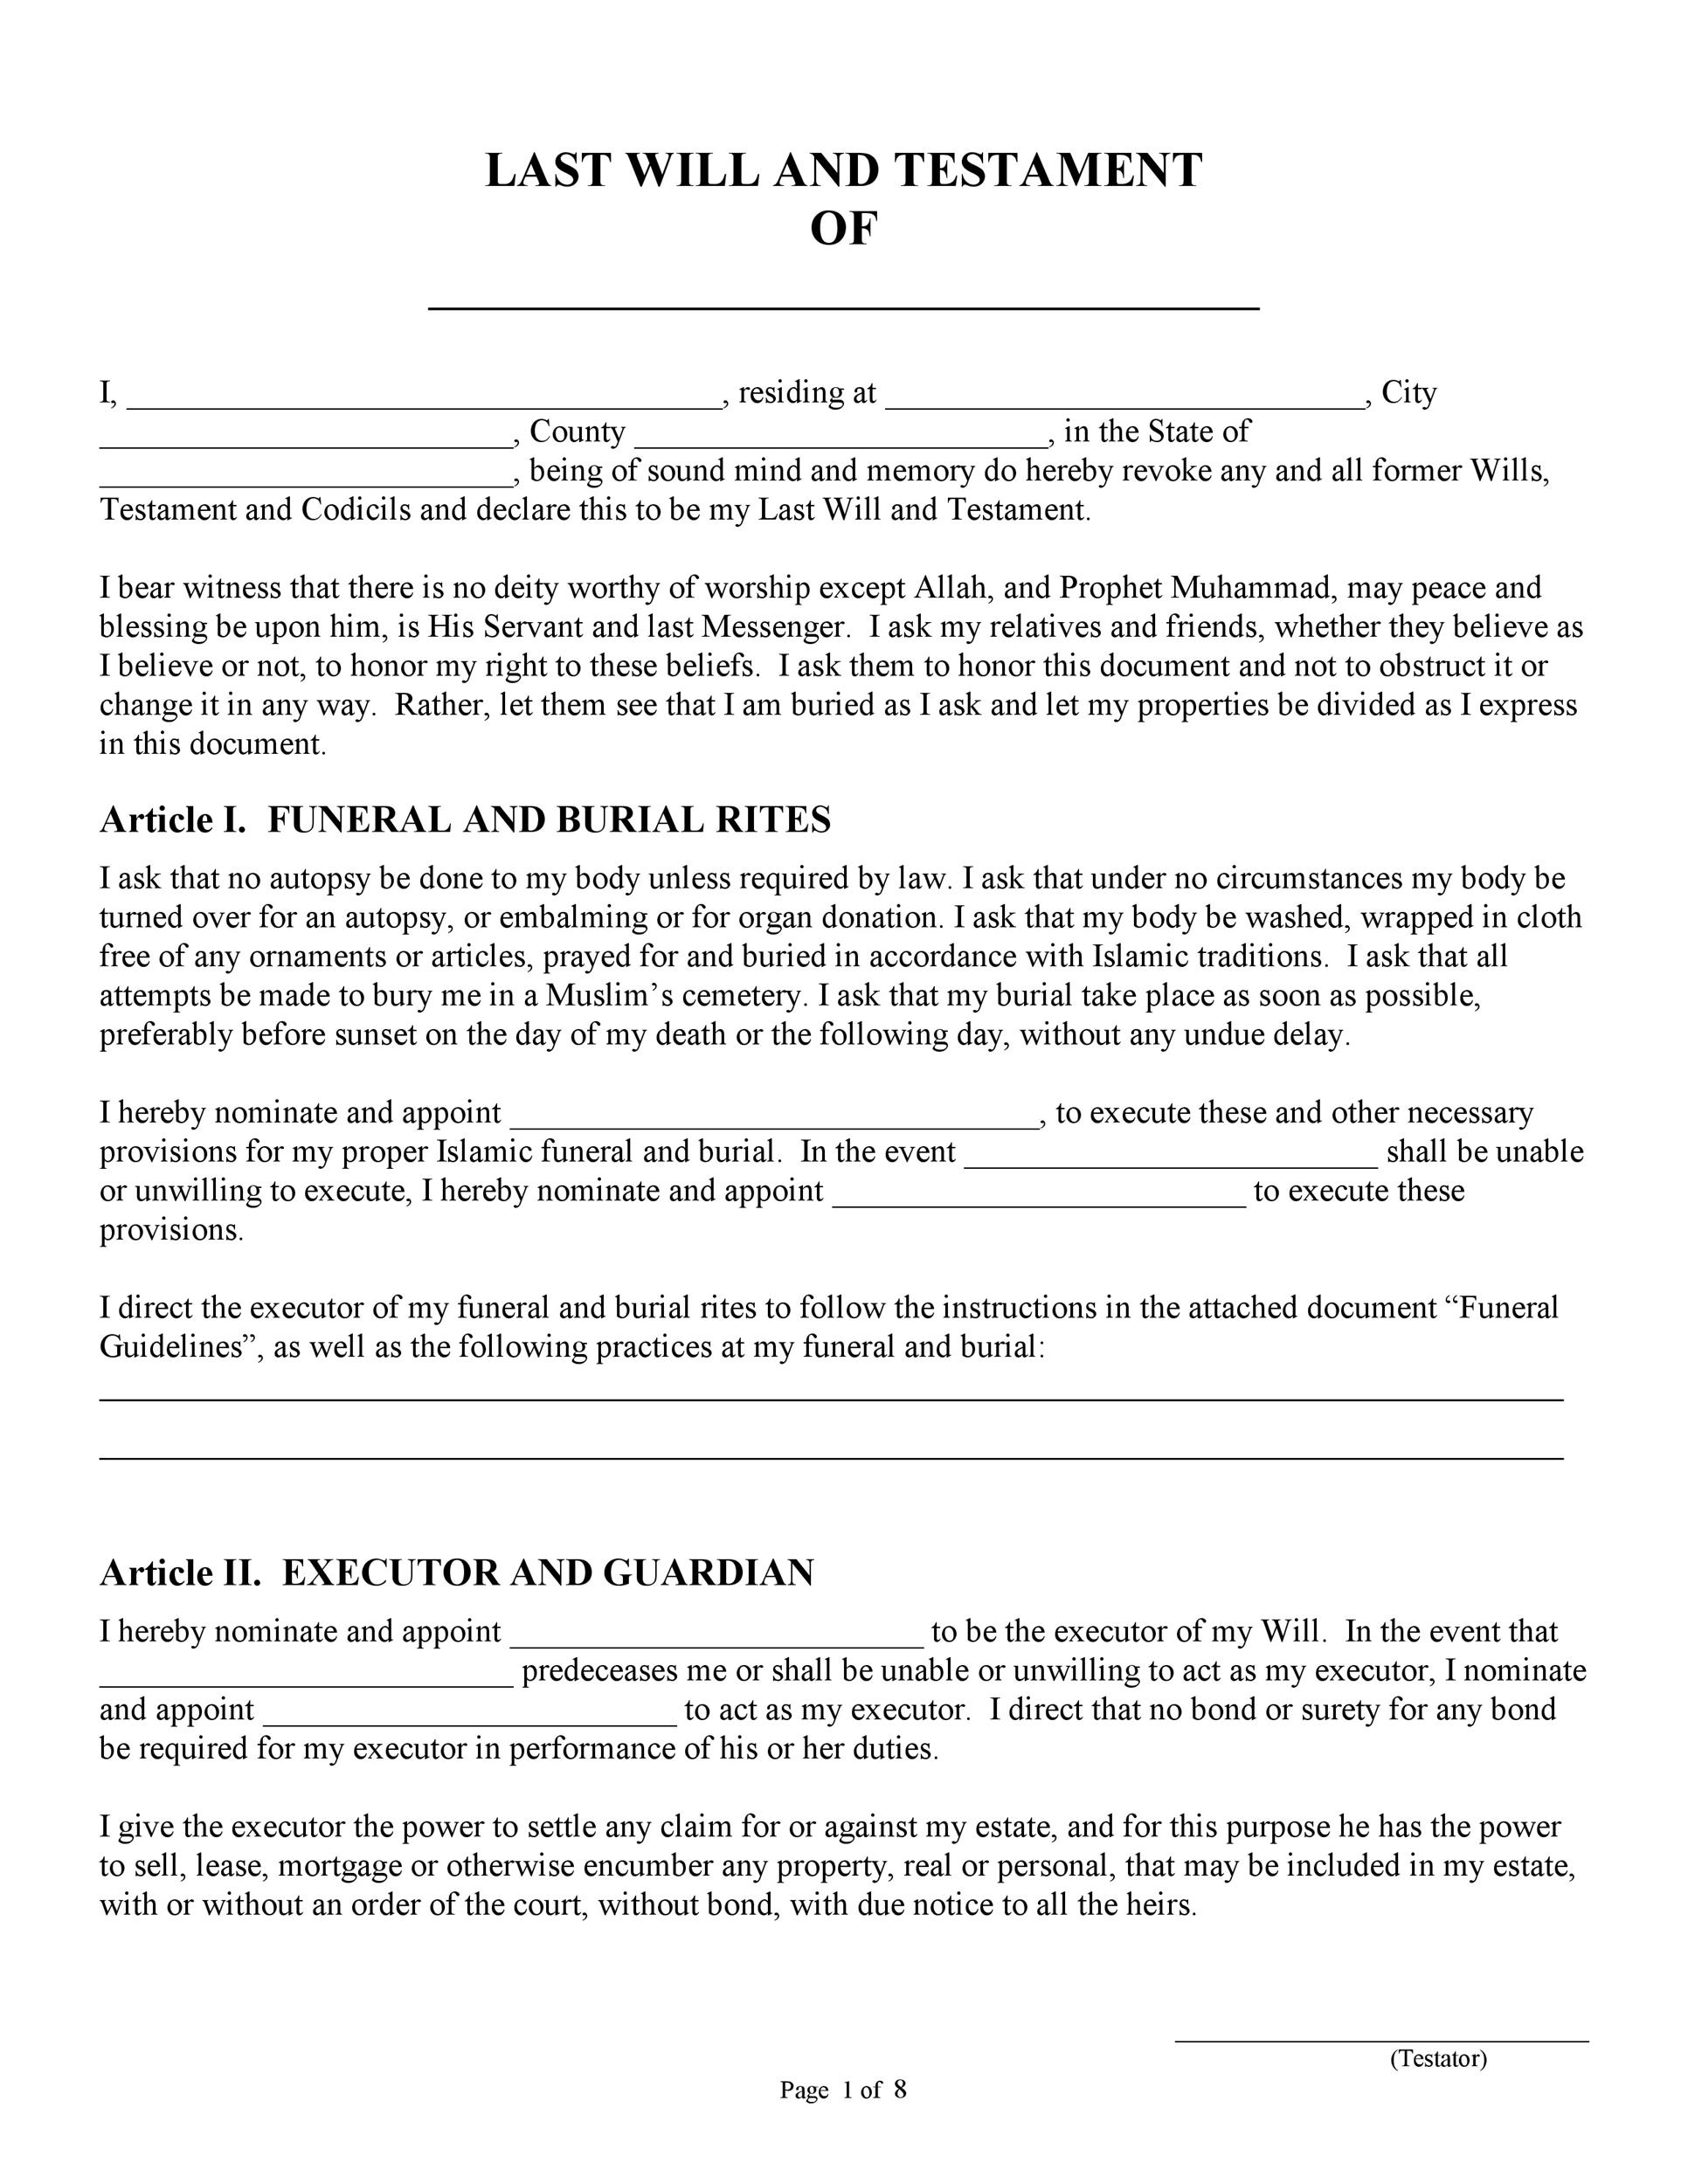 39 last will and testament forms templates template lab free last will and testament template 04 maxwellsz